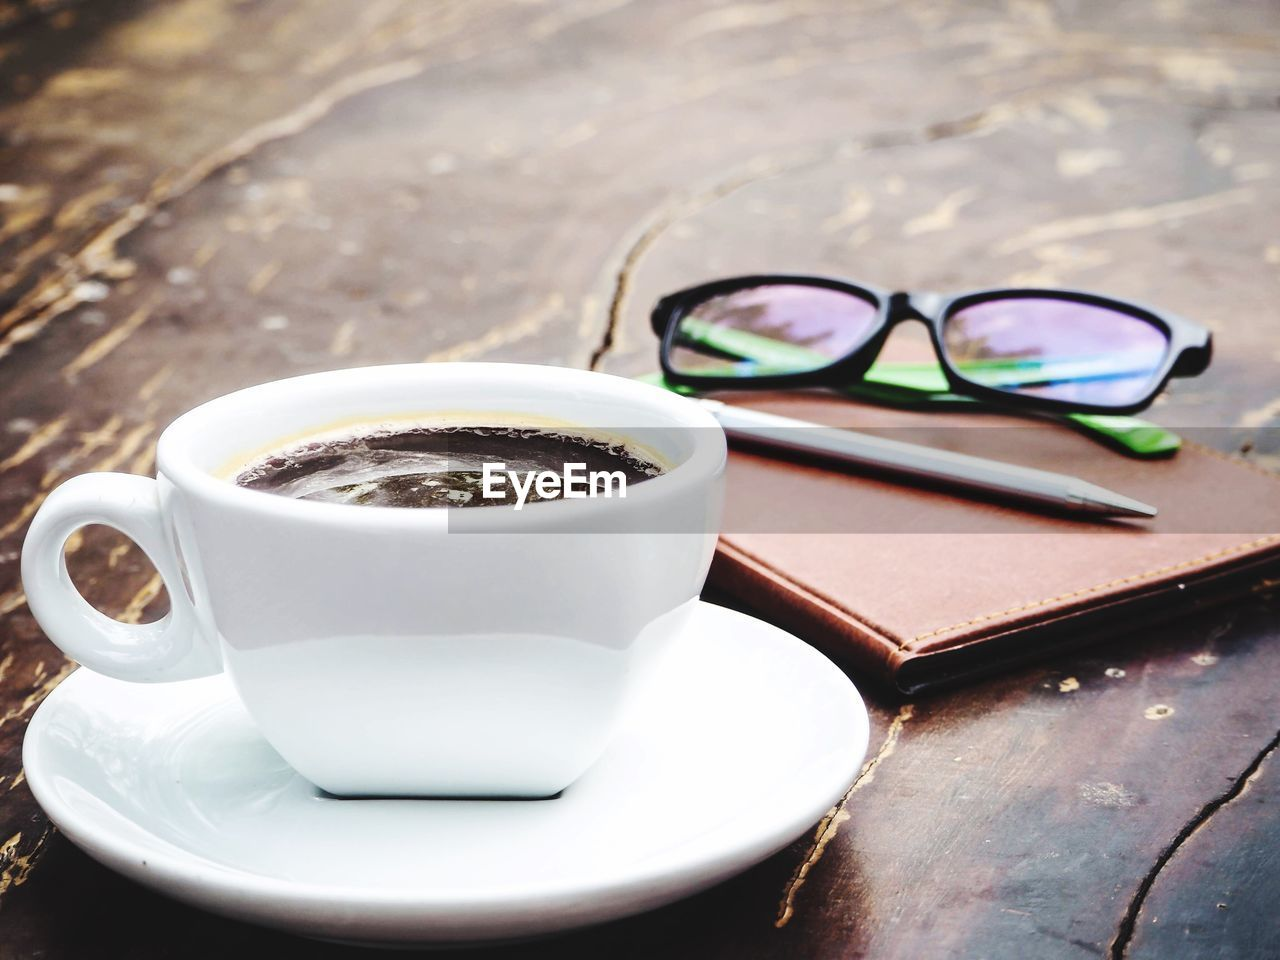 glasses, eyeglasses, food and drink, table, drink, cup, mug, refreshment, still life, coffee cup, coffee, coffee - drink, close-up, no people, focus on foreground, food, indoors, crockery, sunglasses, fashion, personal accessory, eyewear